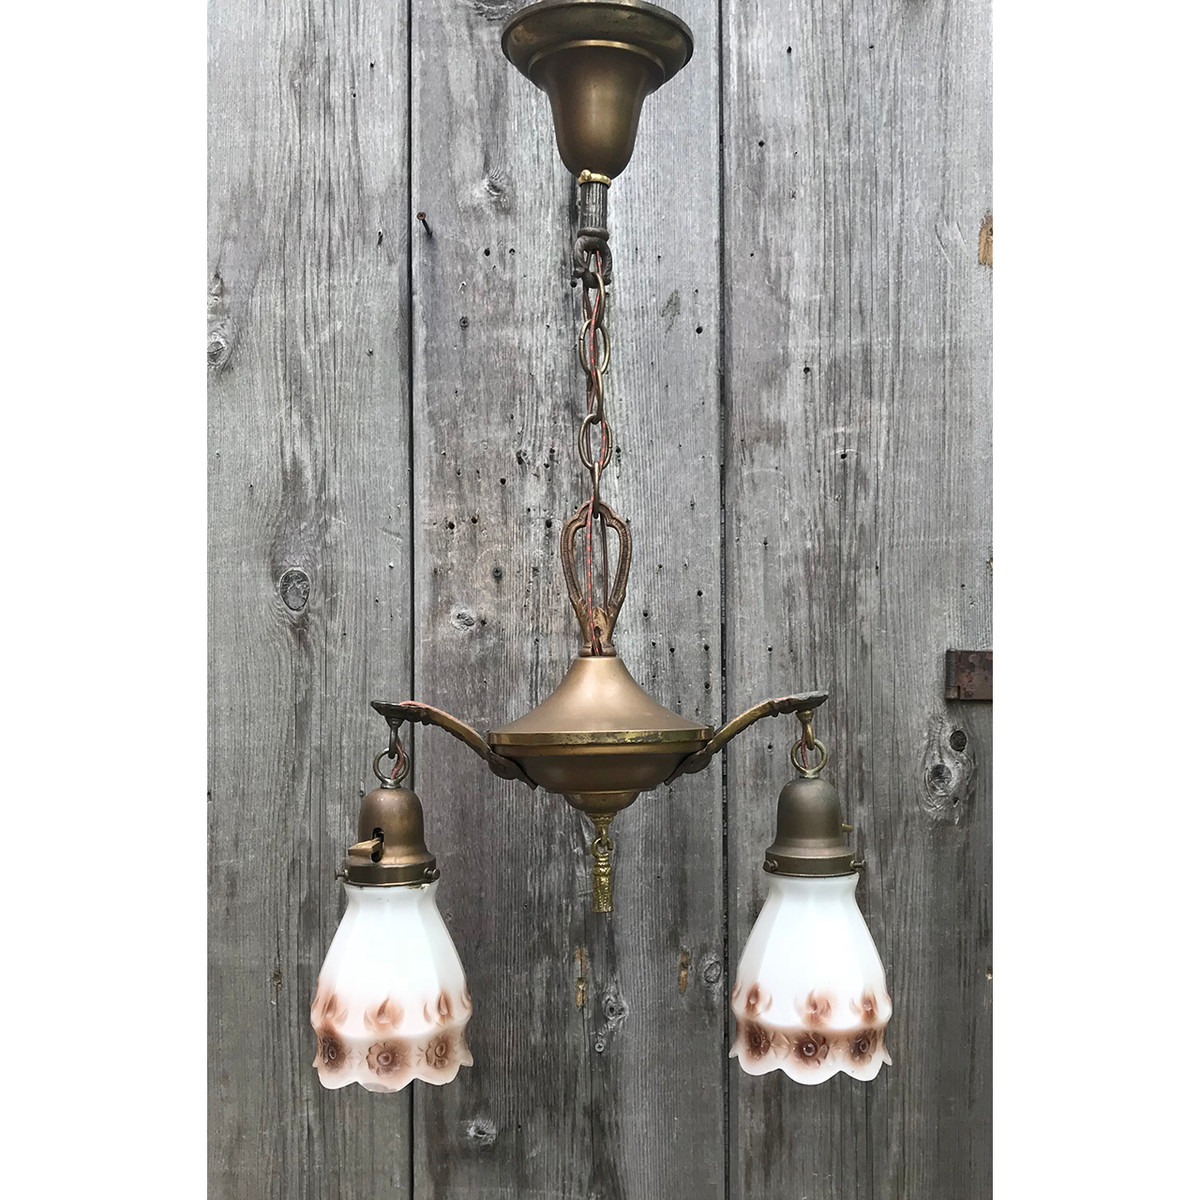 L18086 - Antique Two Light Ceiling Light Fixture